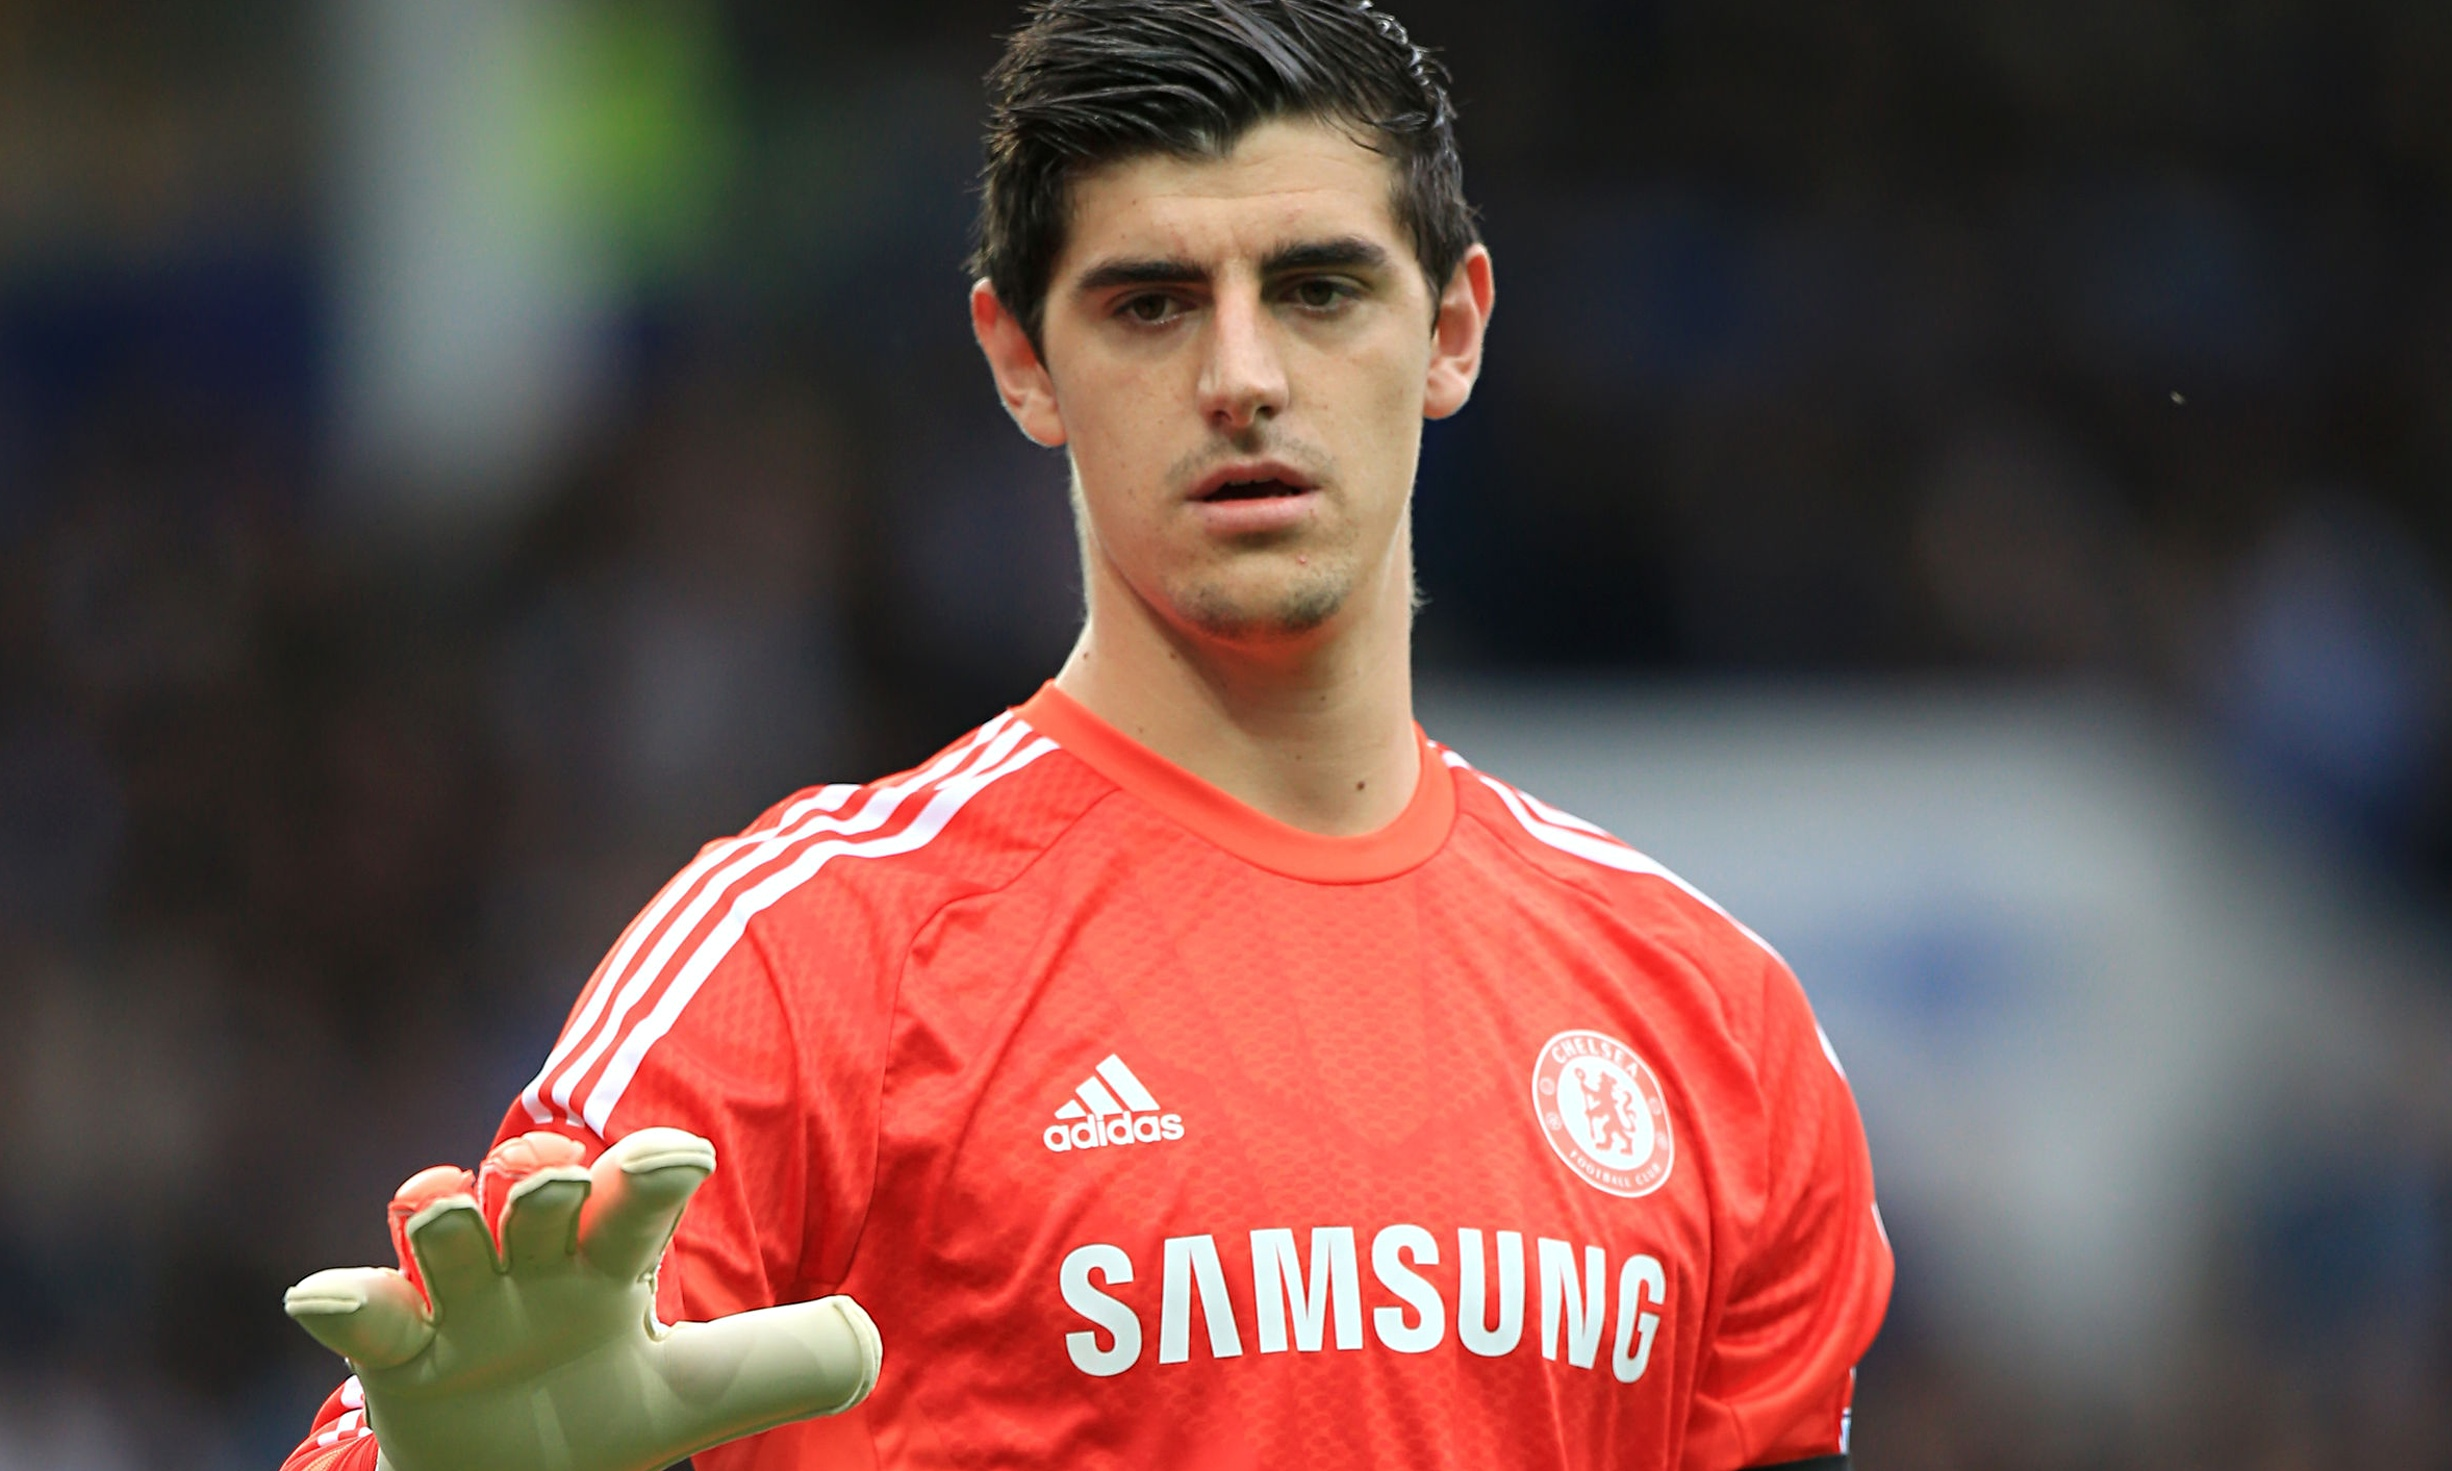 Thibaut Courtois earned a  million dollar salary, leaving the net worth at 4 million in 2017